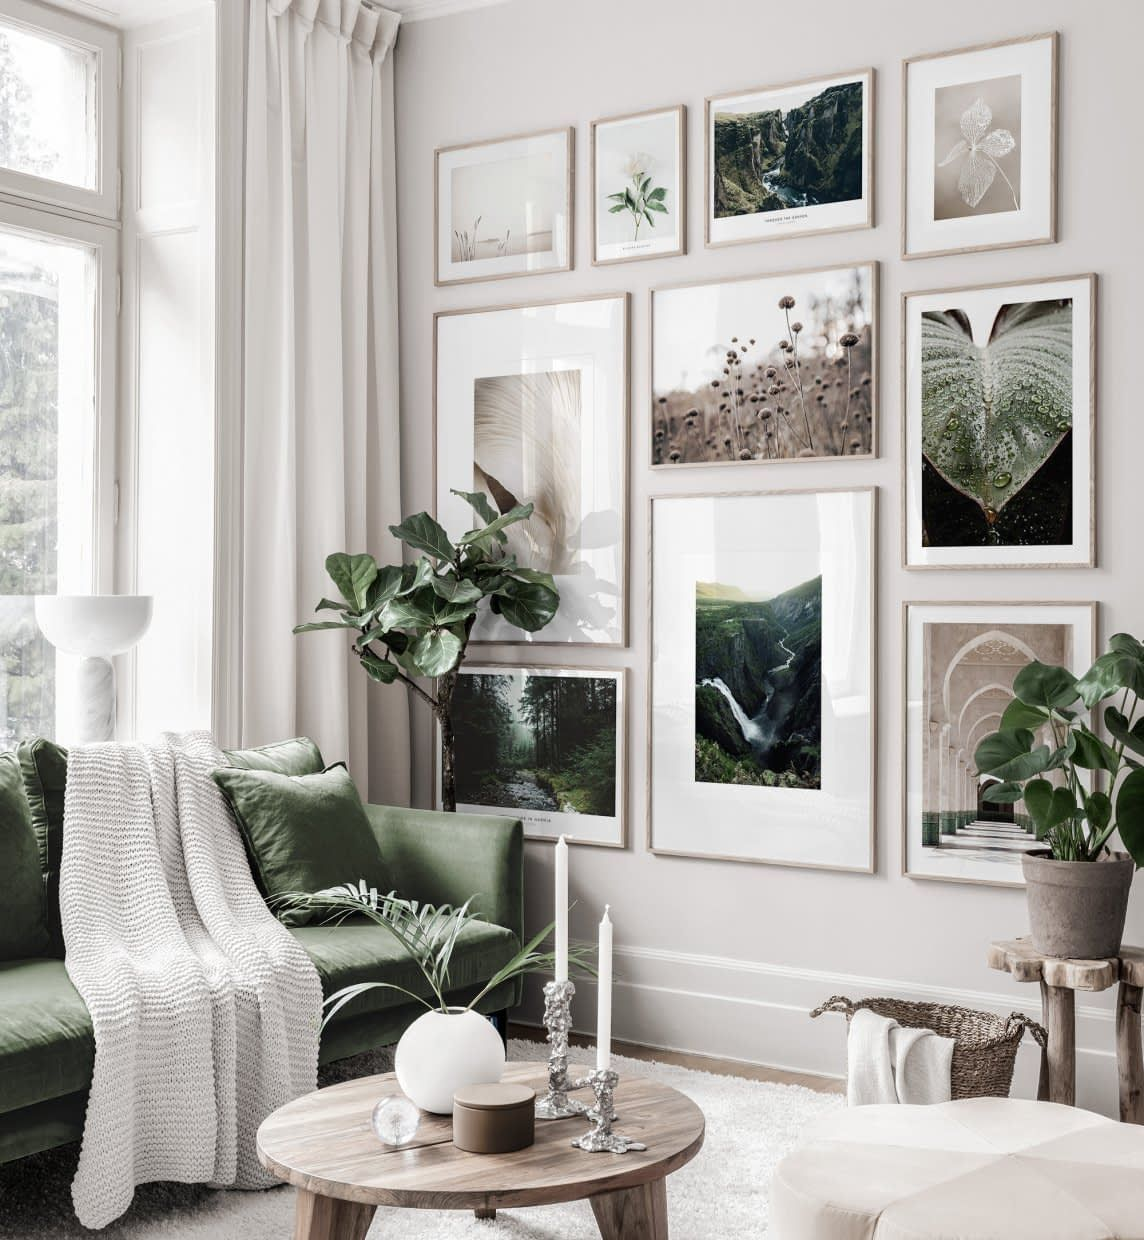 Soothing Gallery Wall In Brown Green Tones With Nature Posters In Oaken Frames In 2020 Gallery Wall Living Room Gallery Wall Bedroom Gallery Wall Inspiration